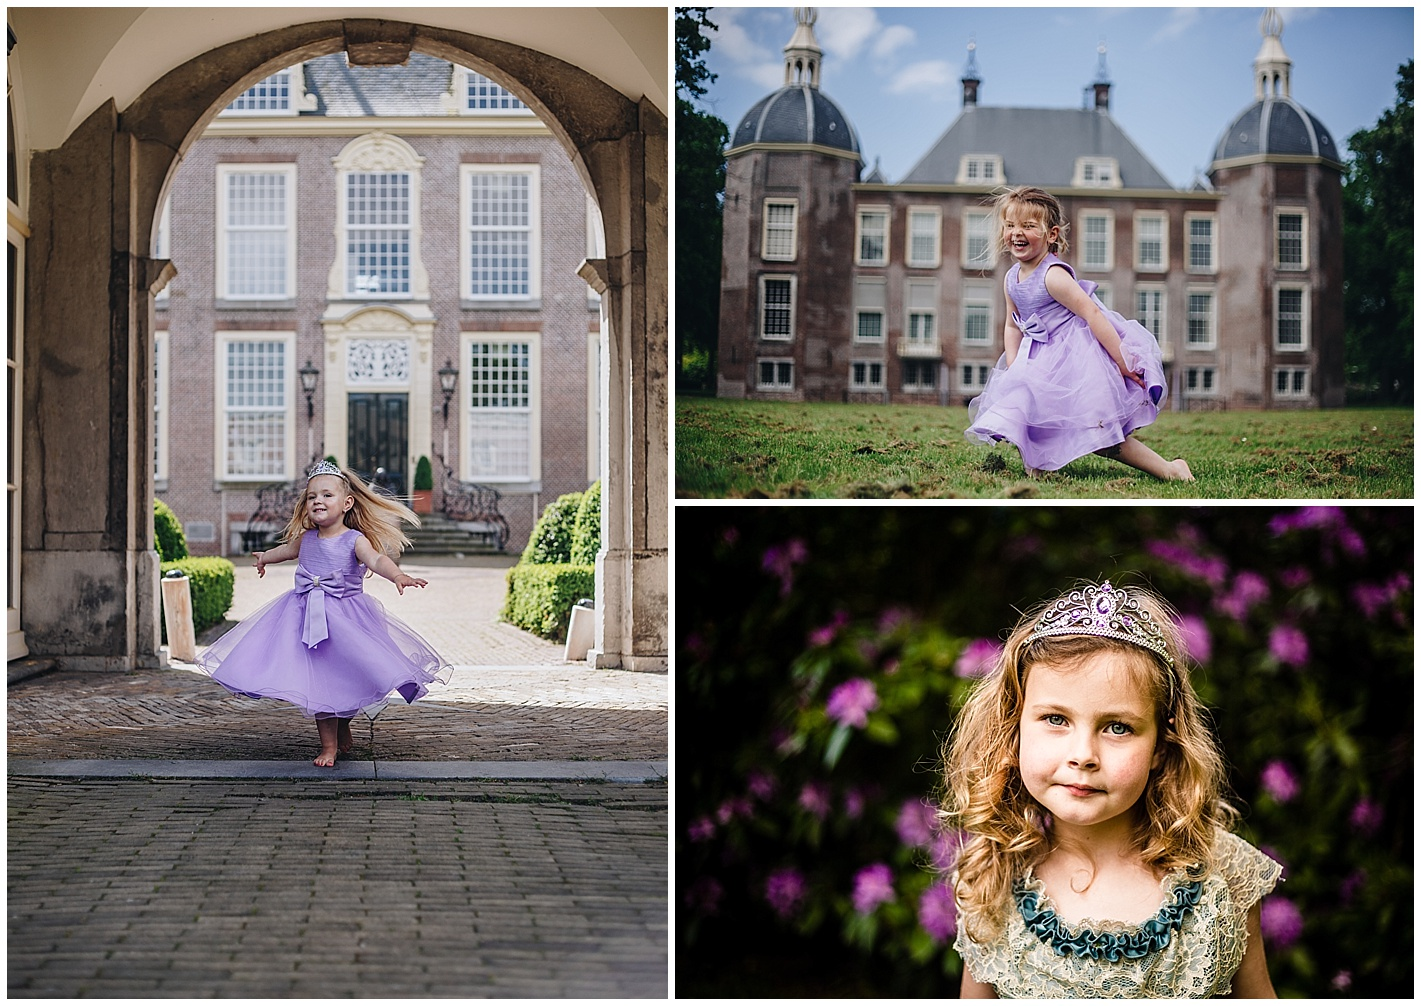 Prinsessen mini shoot in kasteel